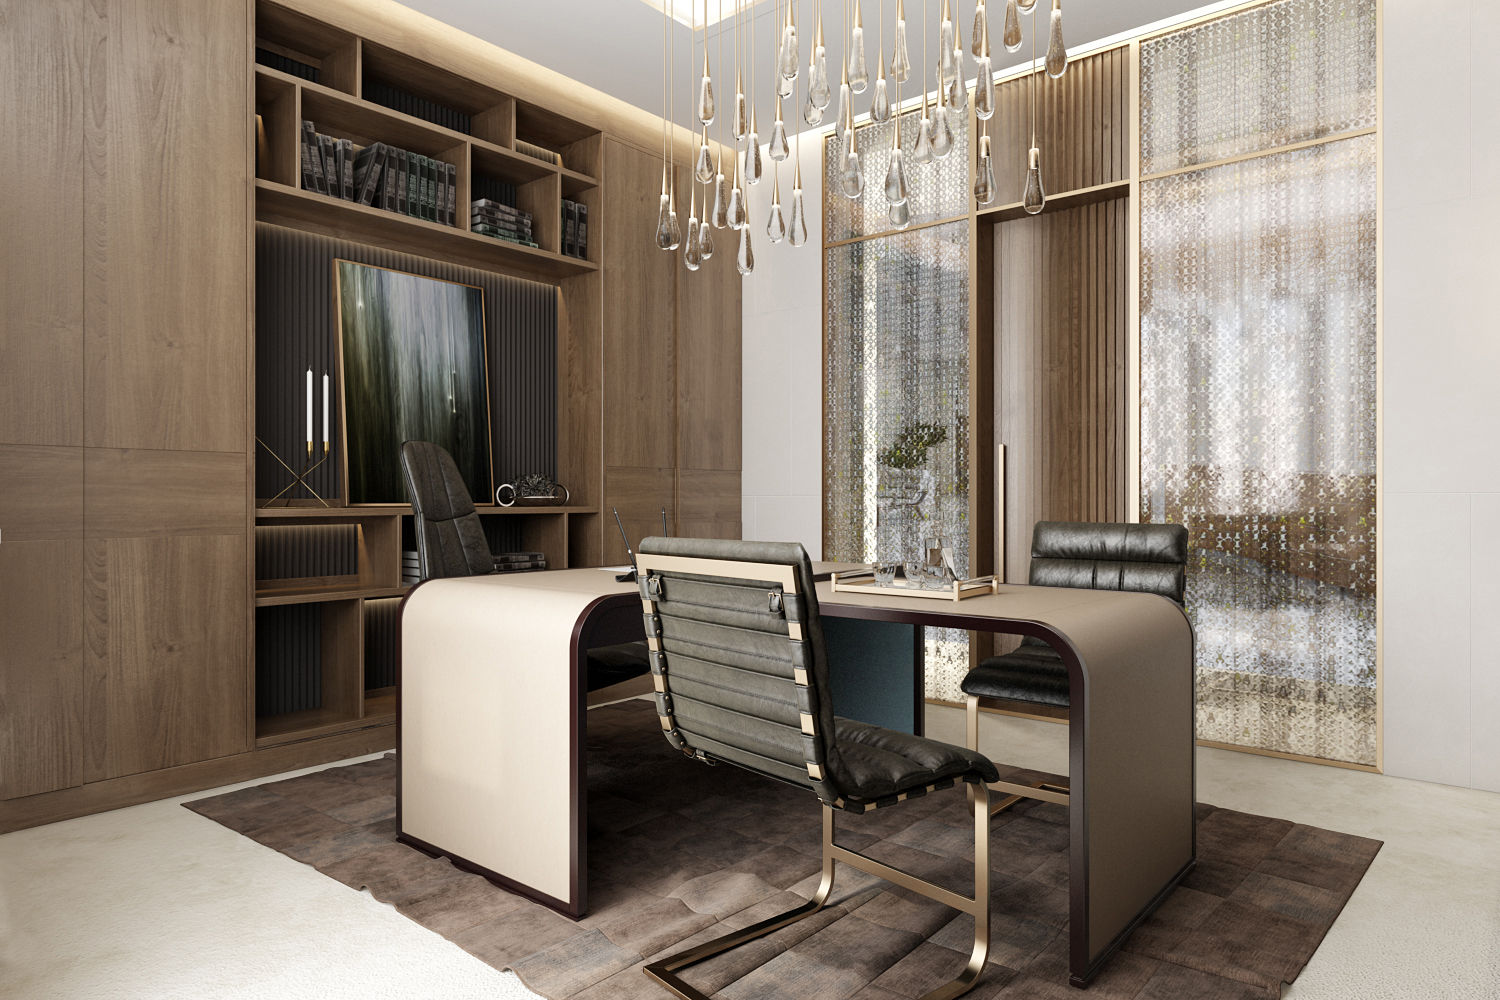 ways-to-3d-architectural-renderings-you-must-know-1